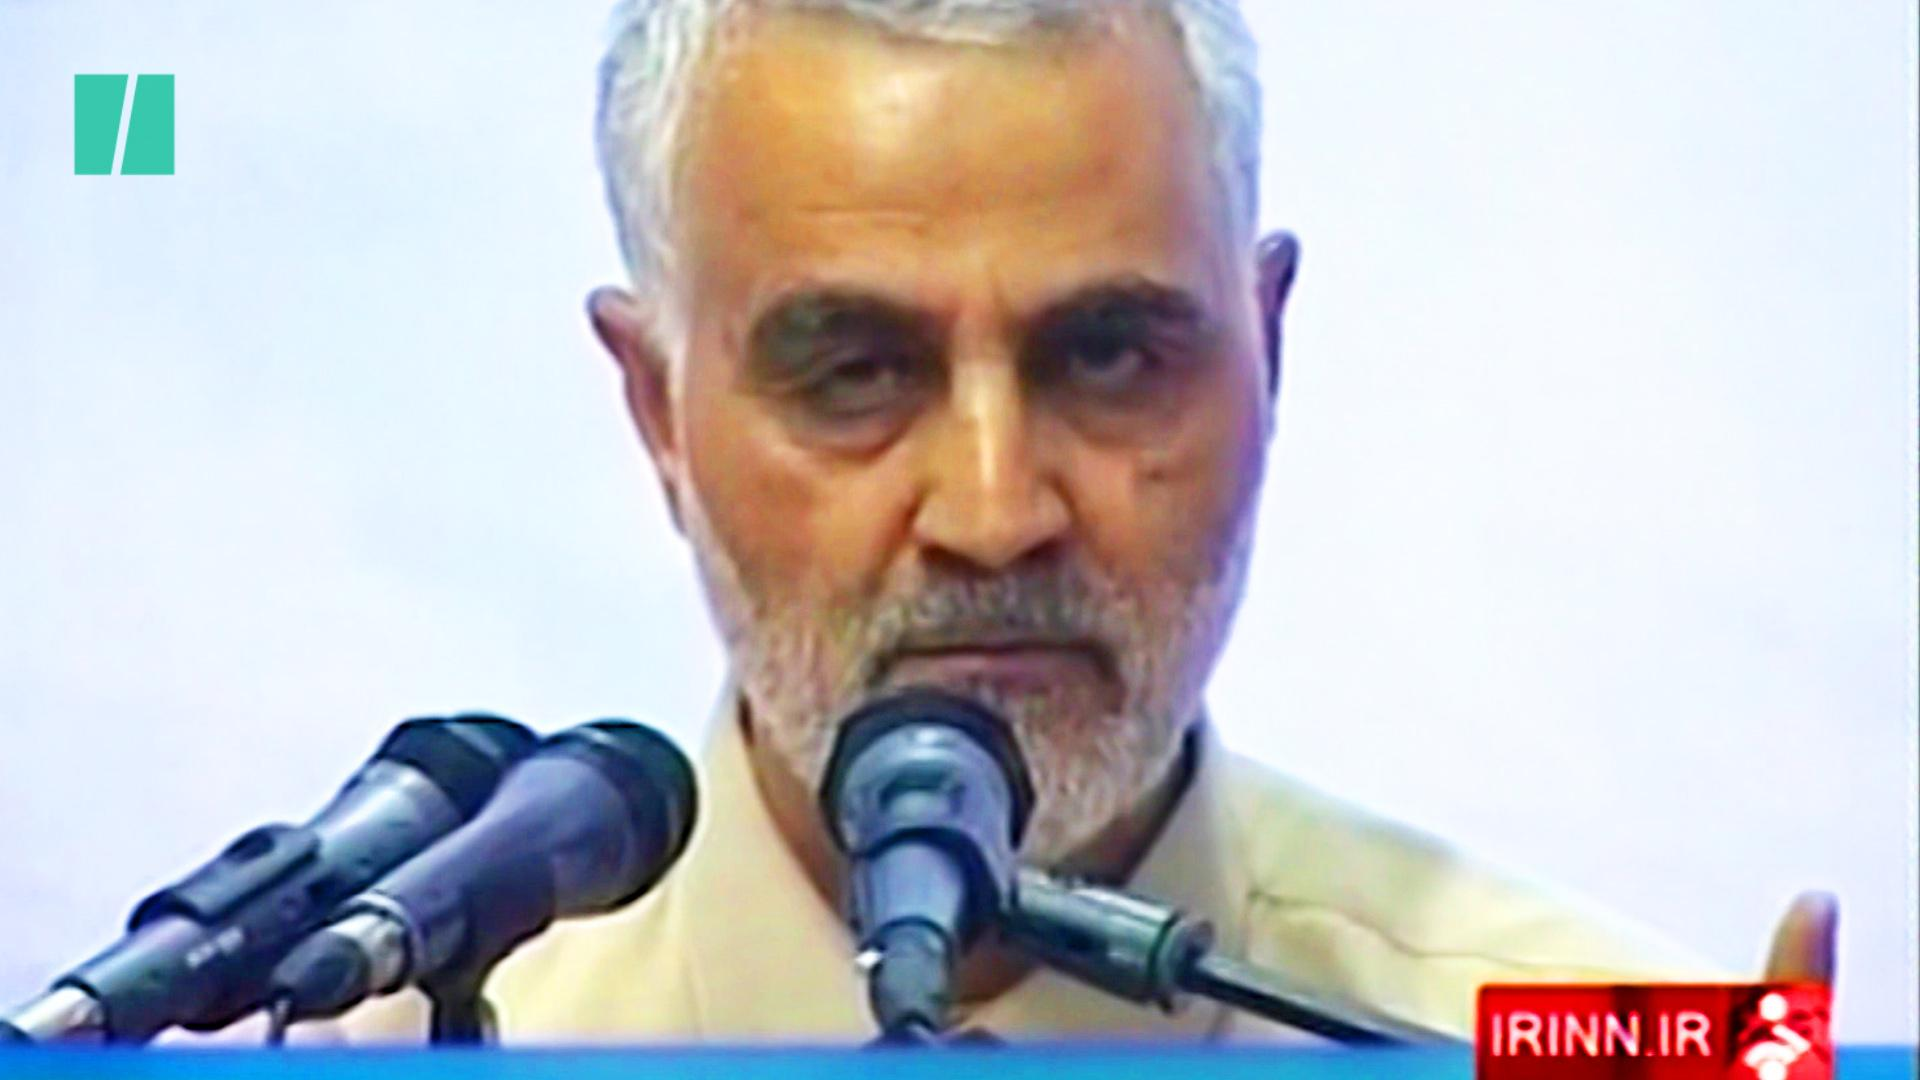 How Will Iran Respond To Trump's Assassination Of Soleimani?